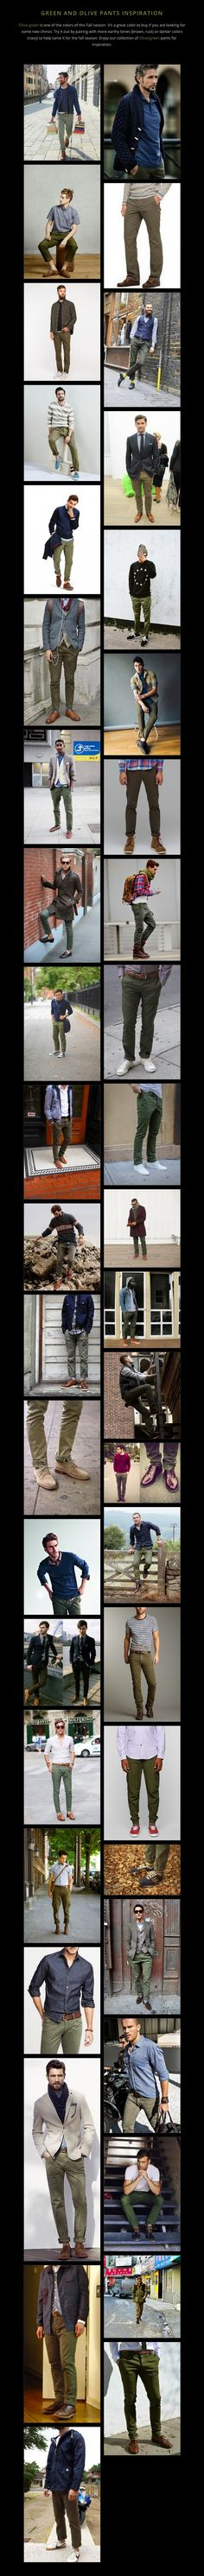 GREEN AND OLIVE PANTS INSPIRATION